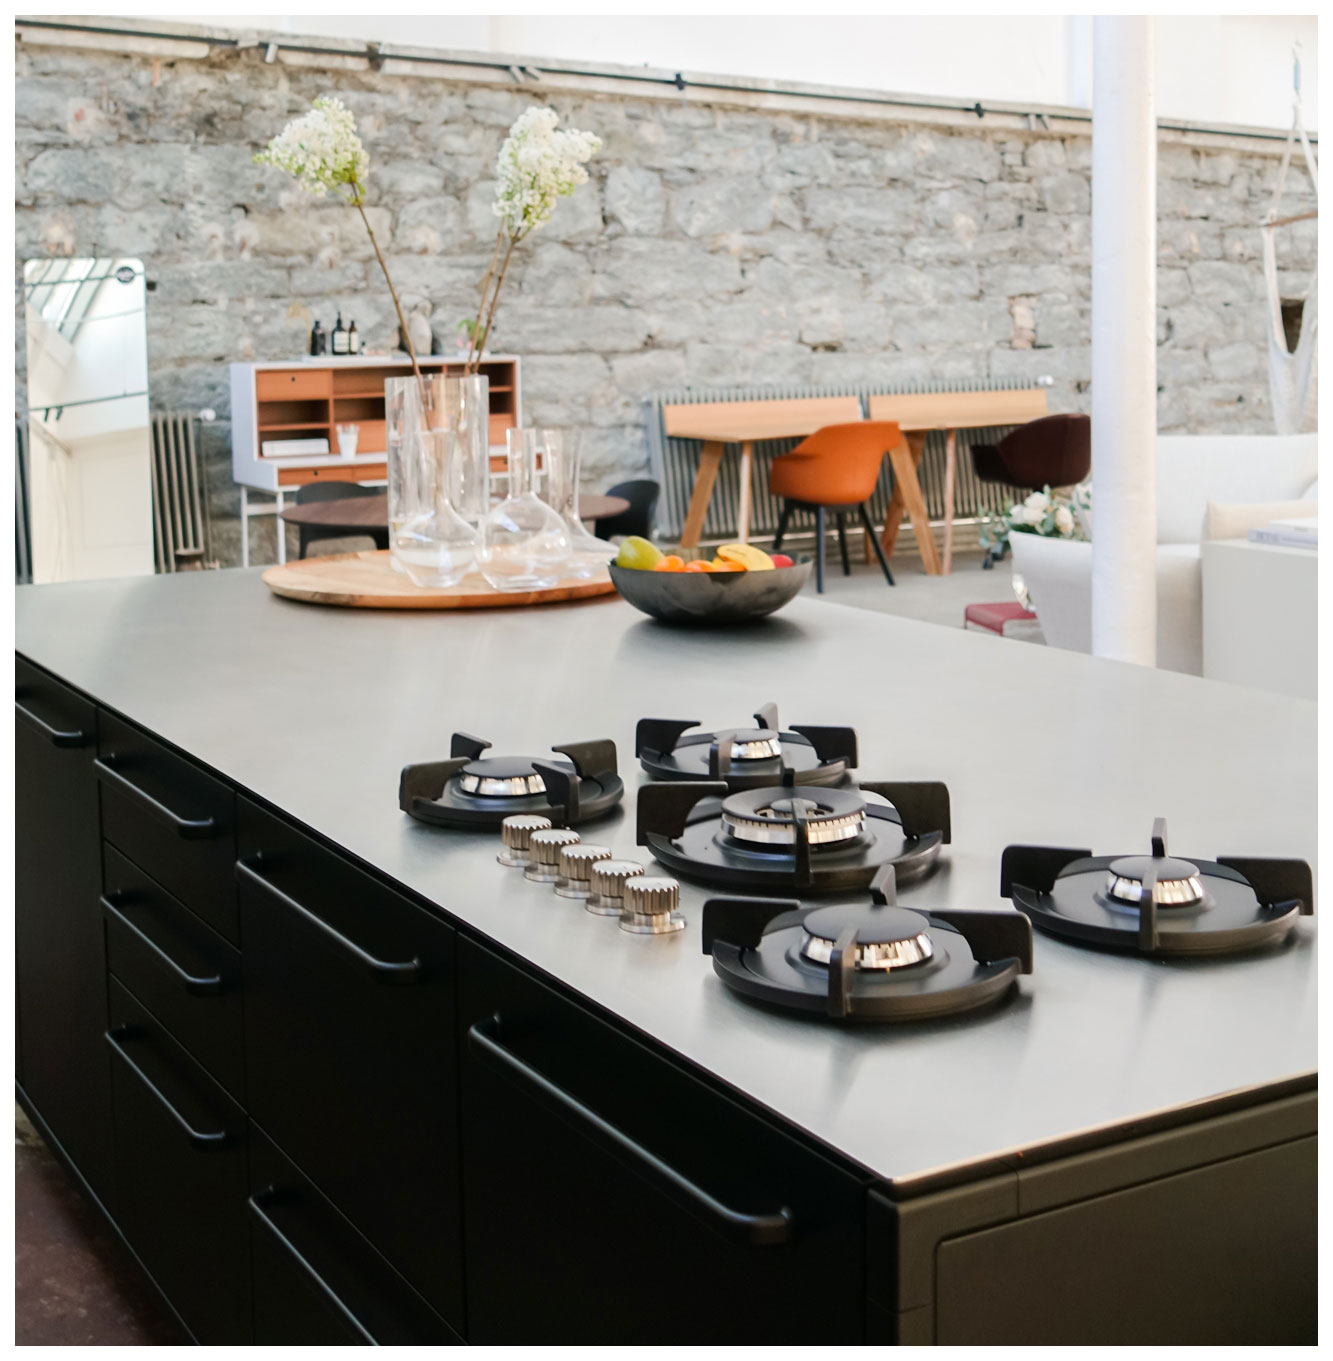 Vipp Kitchen Island with gas stove